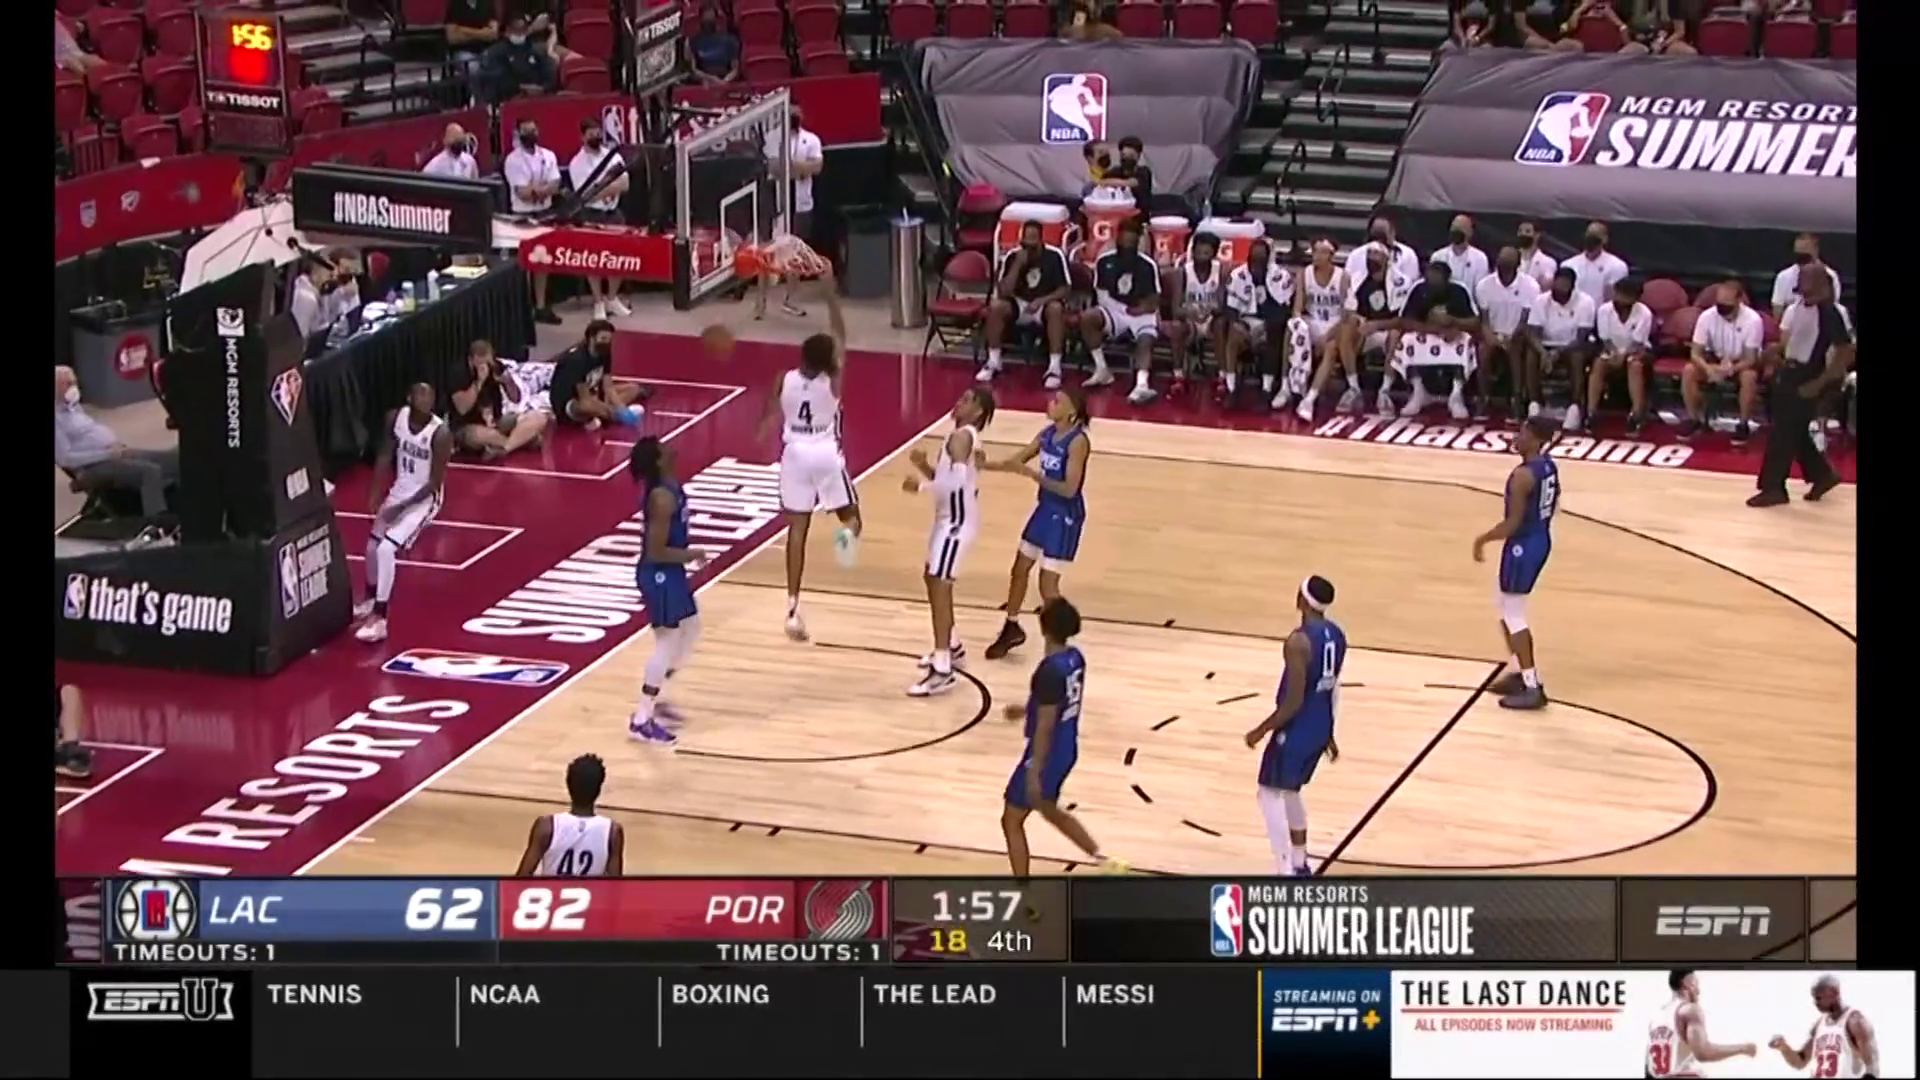 Trail Blazers 86, Clippers 66 | Summer League Highlights